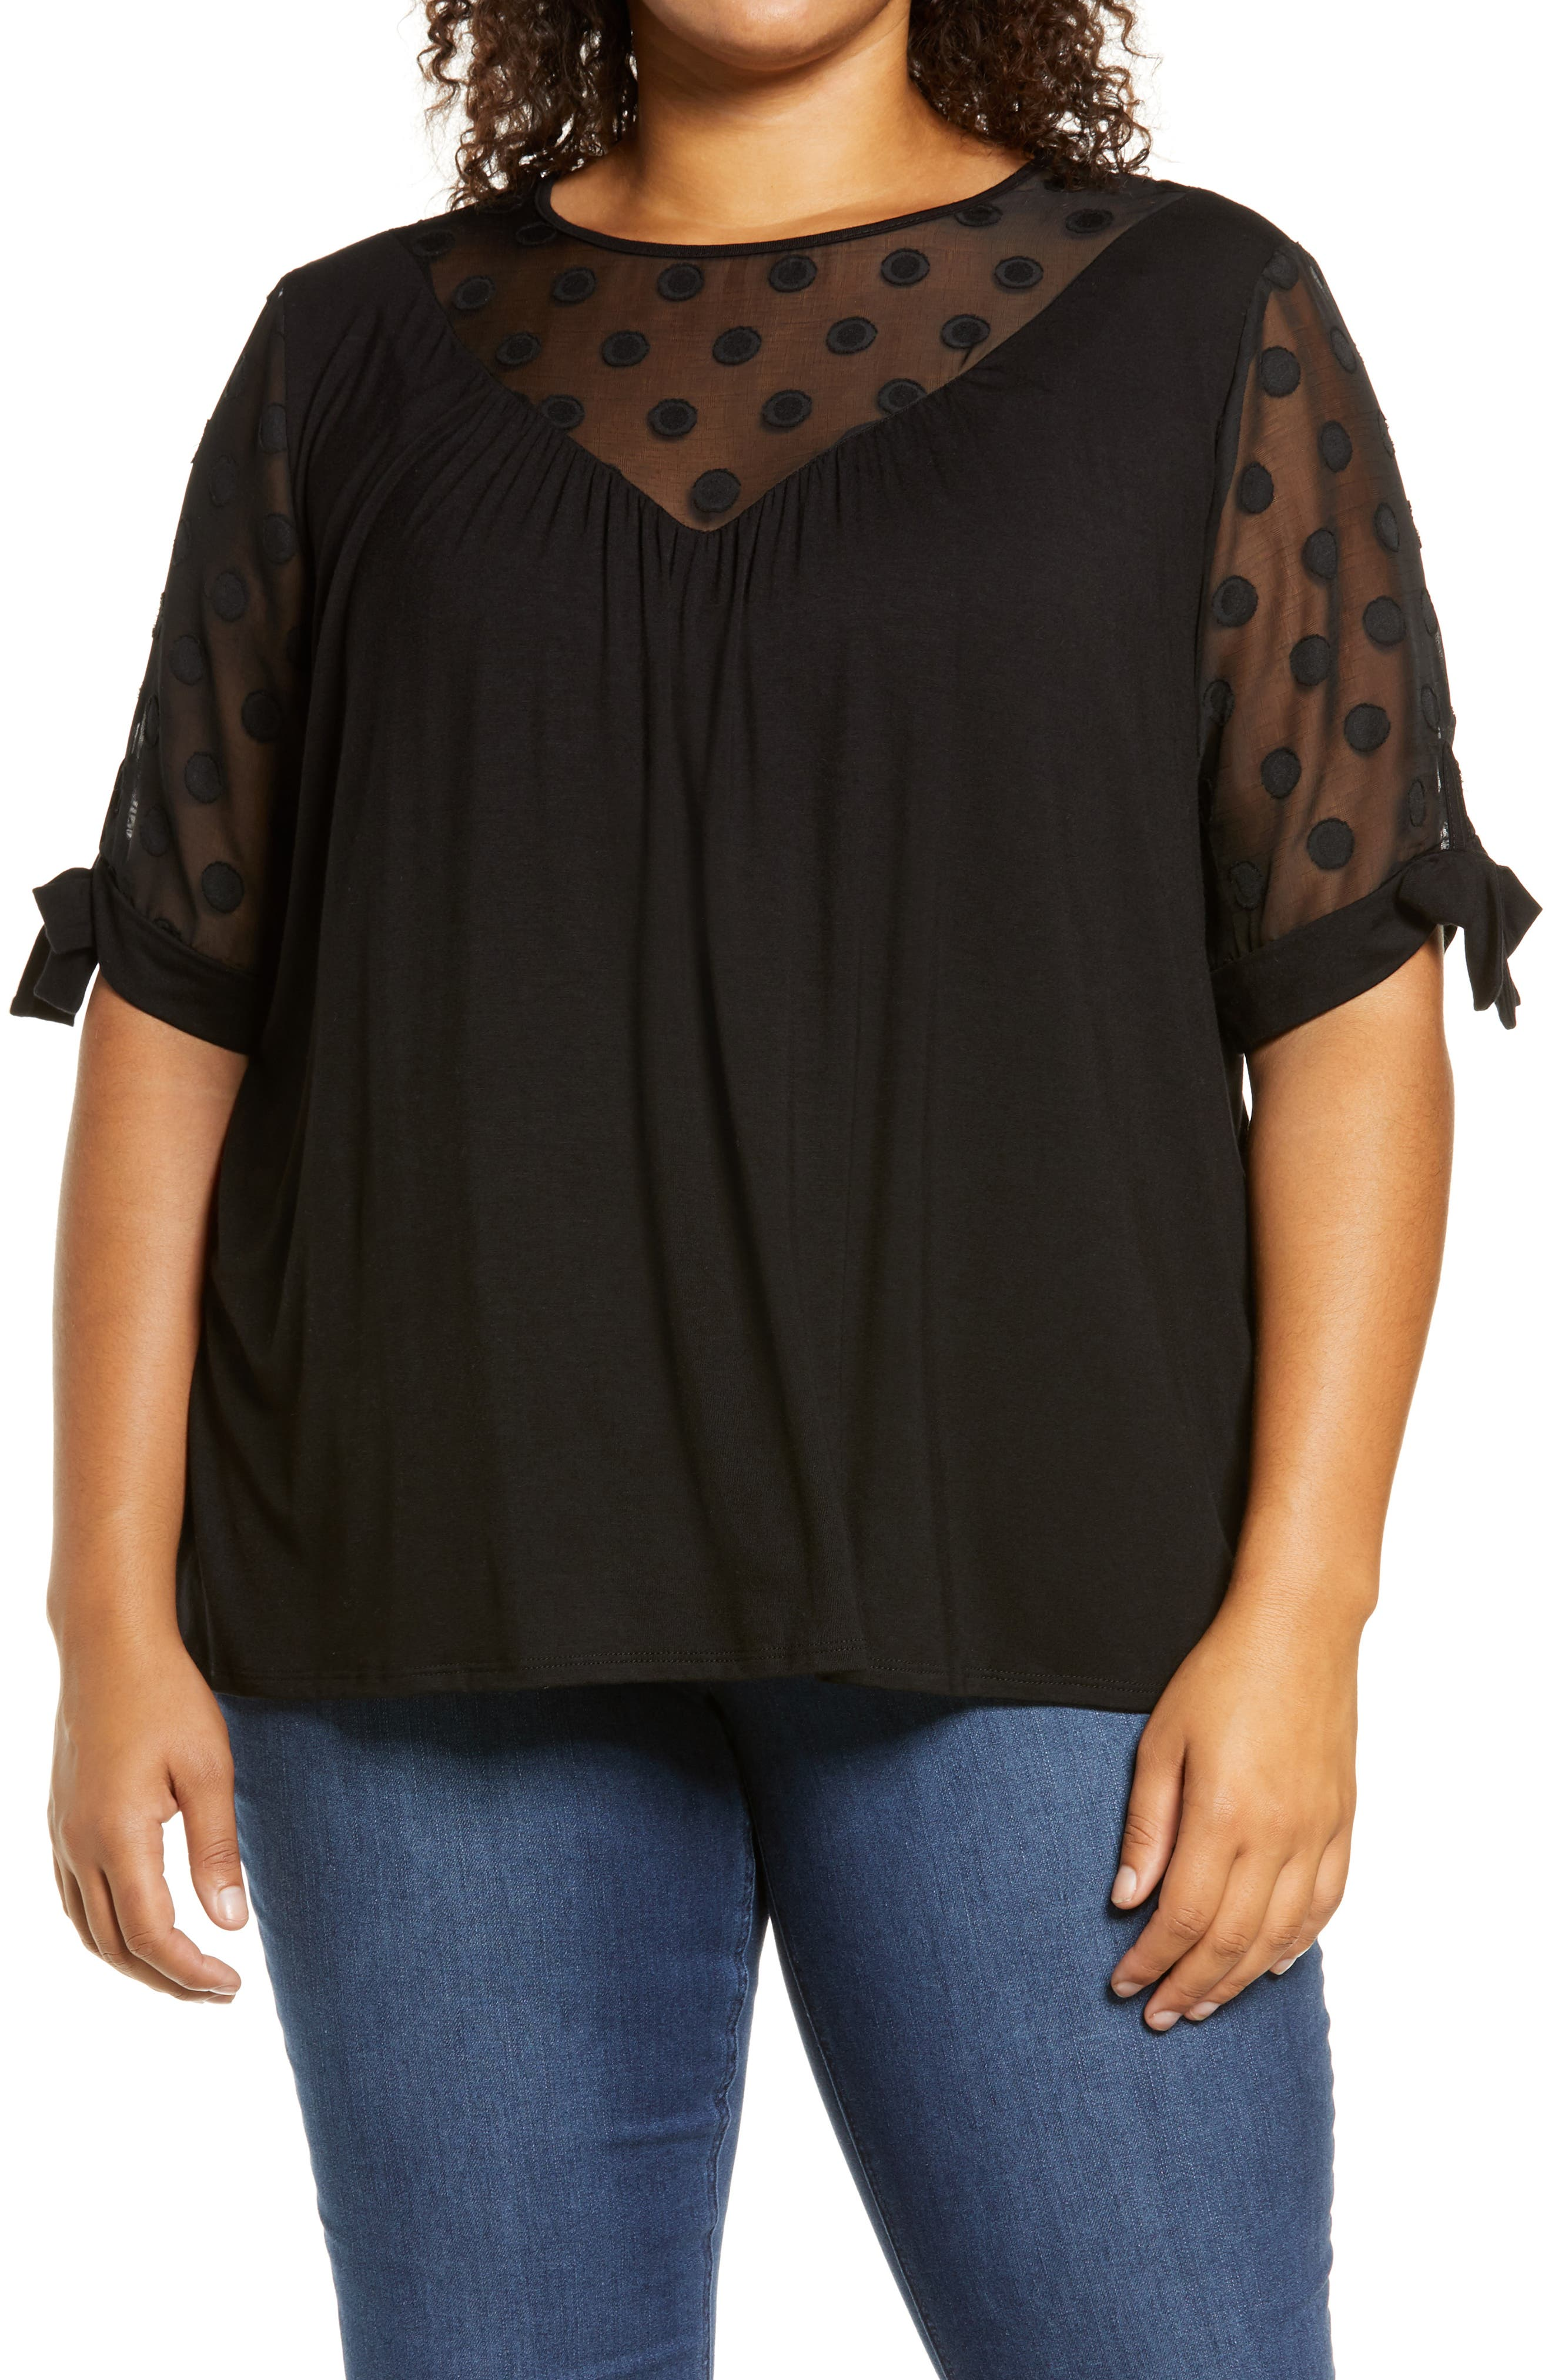 As comfy as your favorite tee but elevated by special details, this top has a sheer, polka dot yoke and sleeves, a draped bodice and delicate bow ties. Style Name: Loveappella Dot Chiffon Top (Plus Size). Style Number: 6142439. Available in stores.